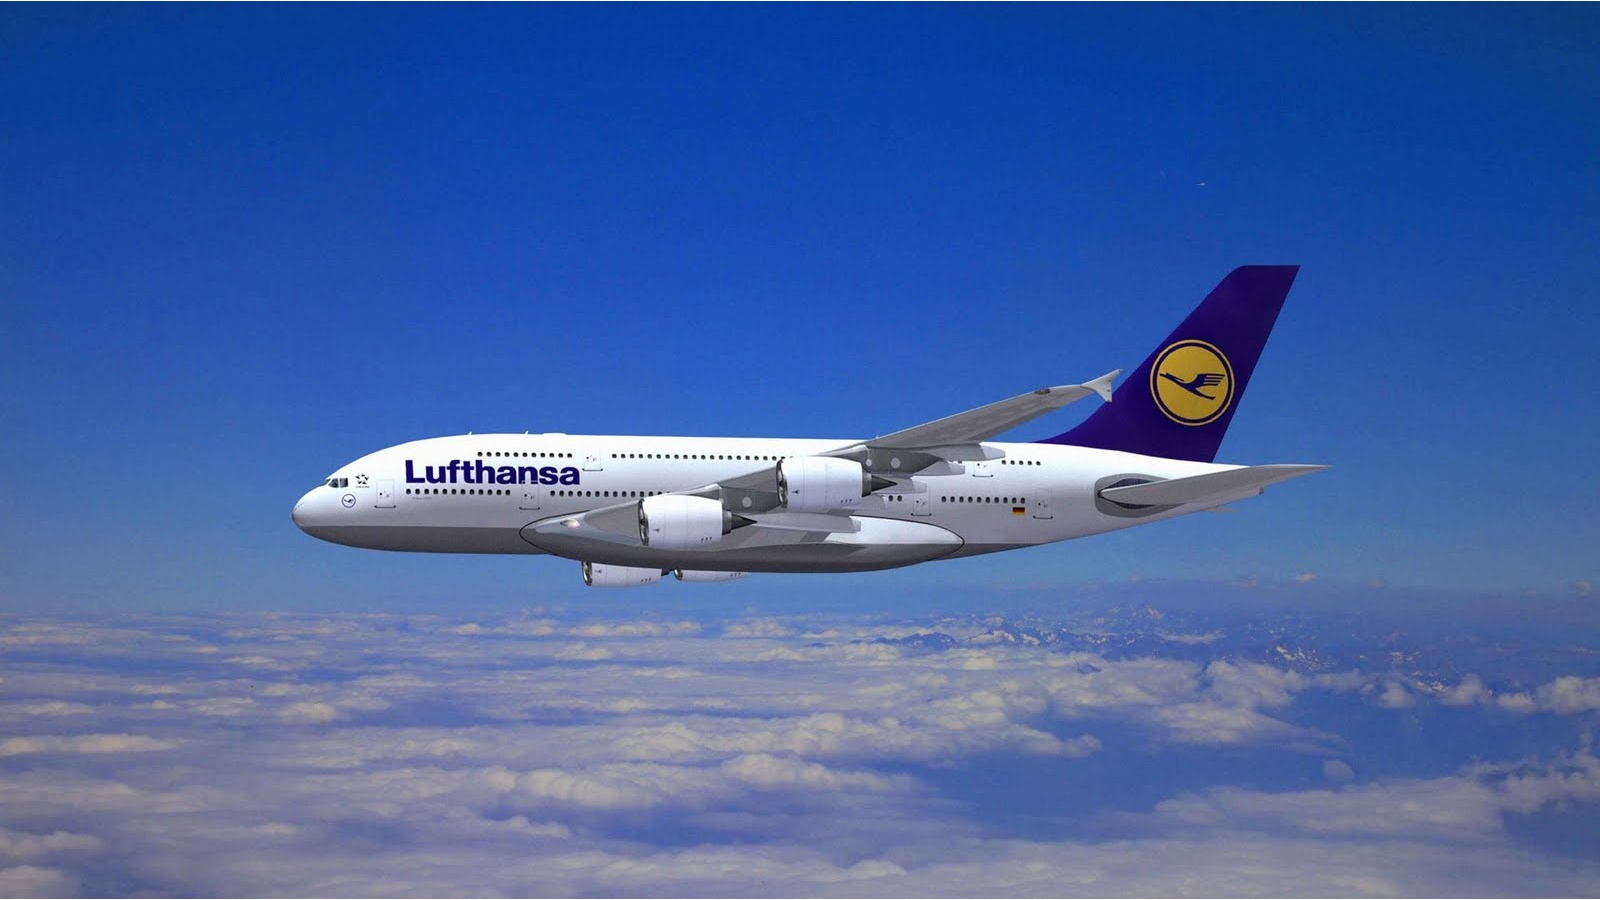 Lufthansa Airlines Airbus A380 Wallpaper   HQ Wallpapers download 1600x900